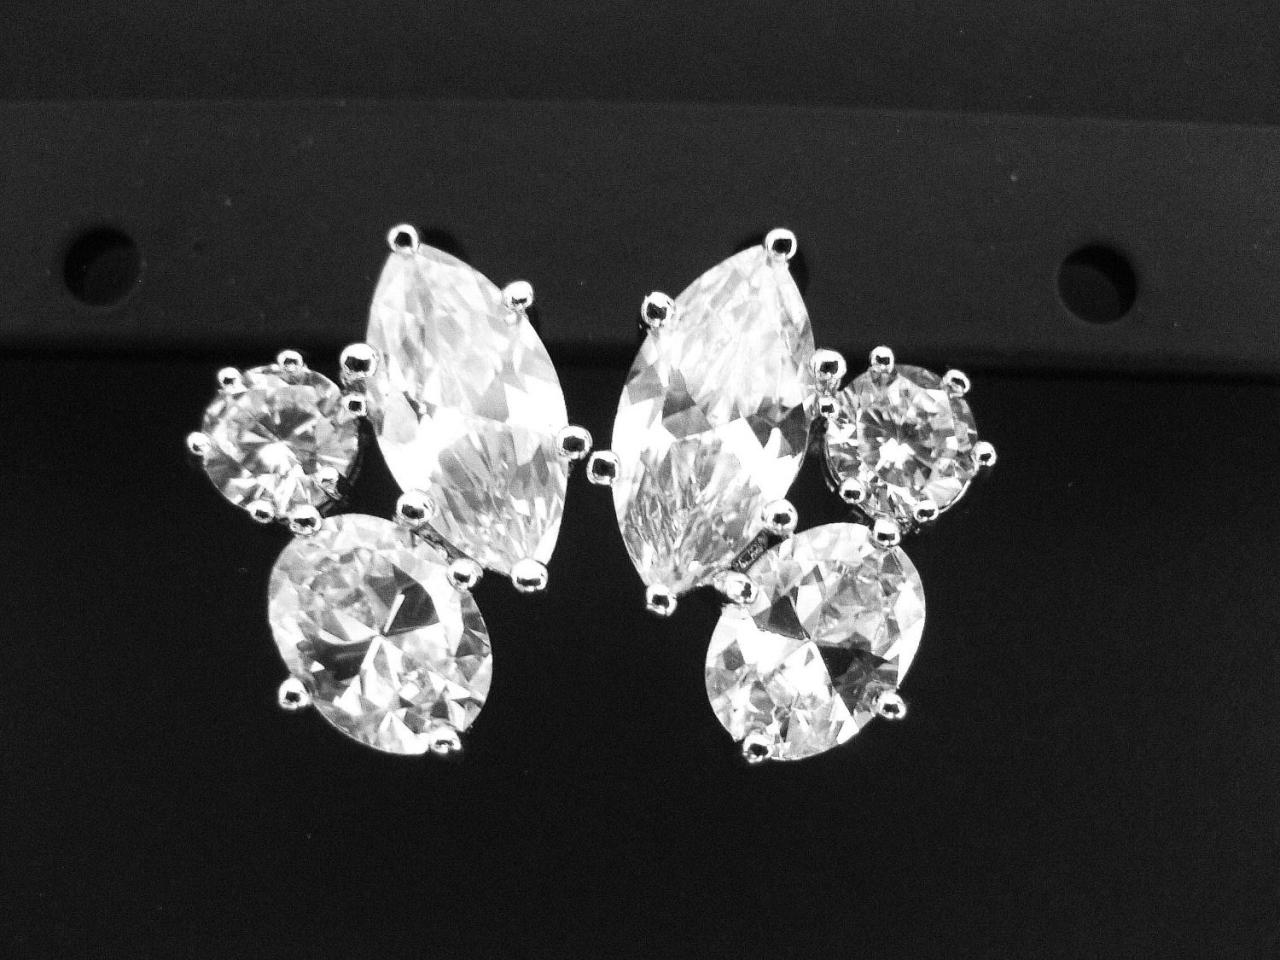 Bridal Crystal Stud Earrings in Silver, Clear Cubic Zirconia Earrings, Wedding Jewelry, Bridesmaid Gift Multi-Stone, Earrings Sparky (E018)